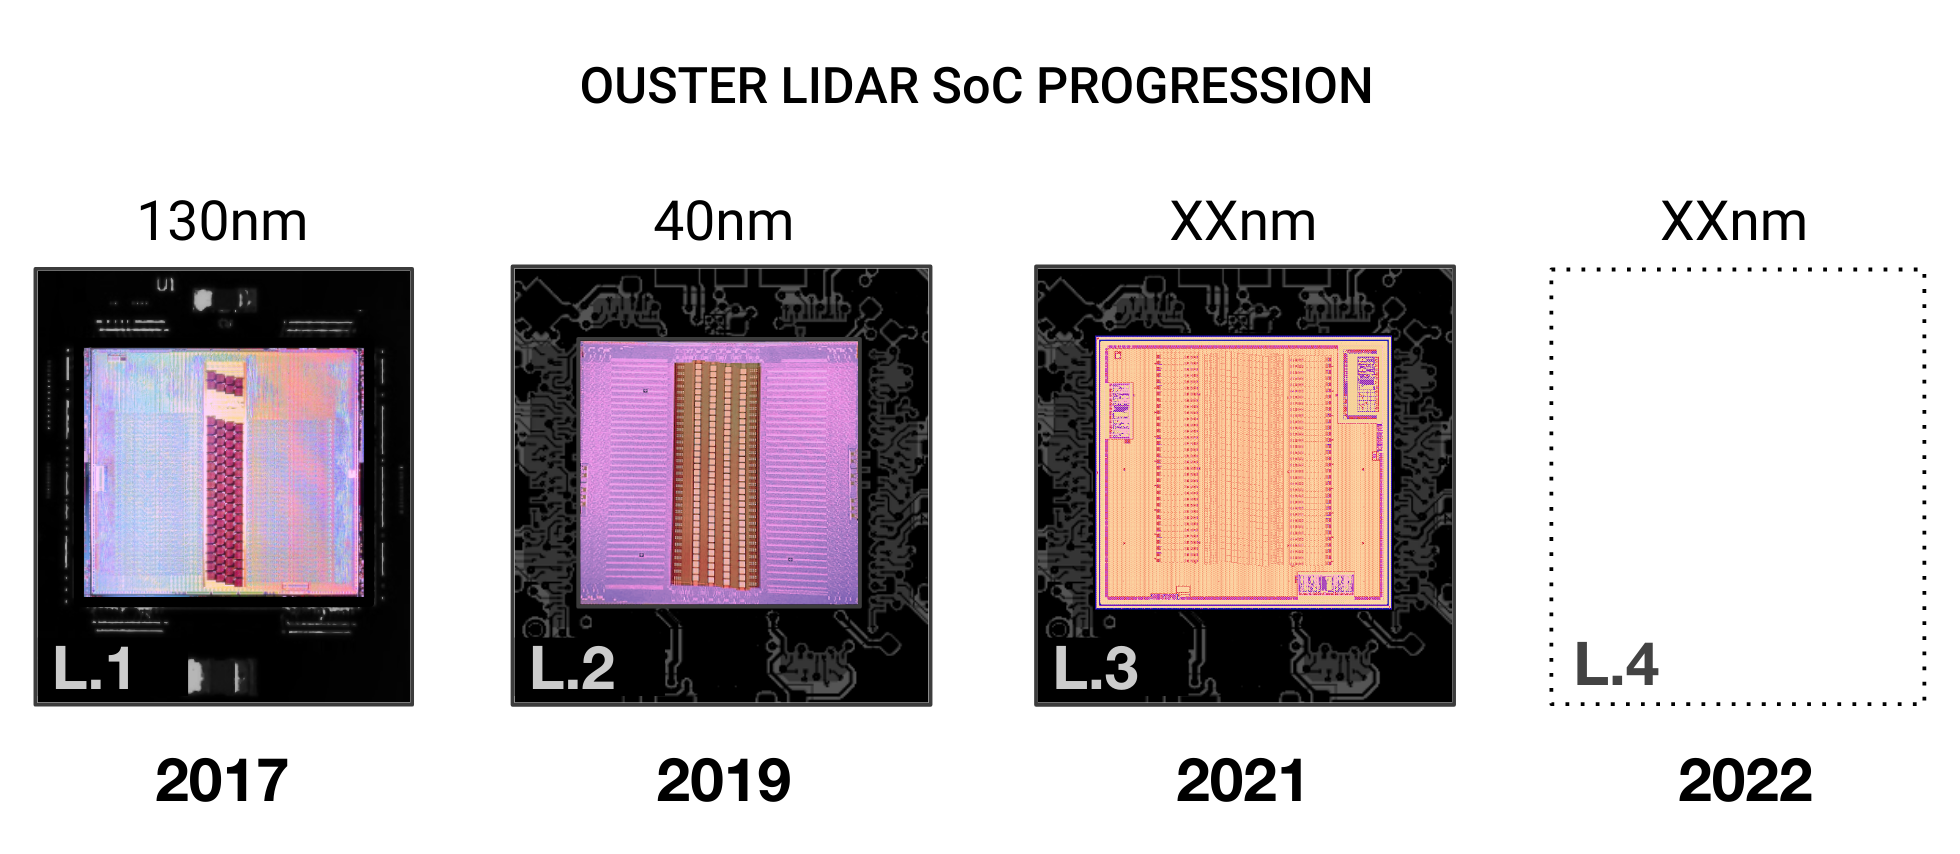 Ouster Lidar SoC Progression